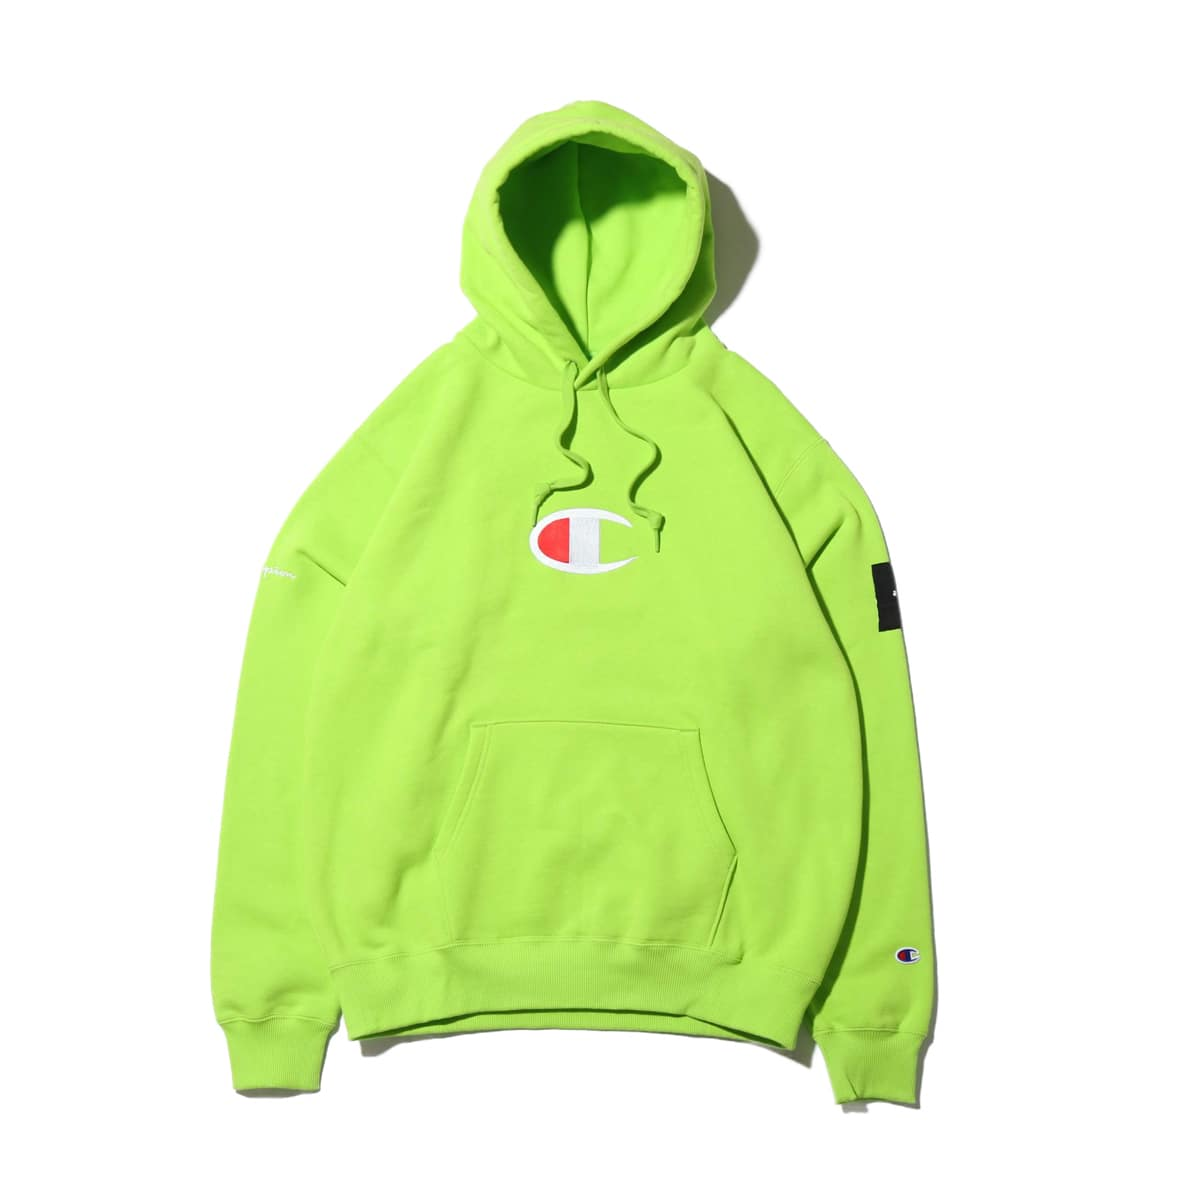 Champion x ATMOS LAB P/O HOODED SWEATSHIRT ライム 19FW-S_photo_large